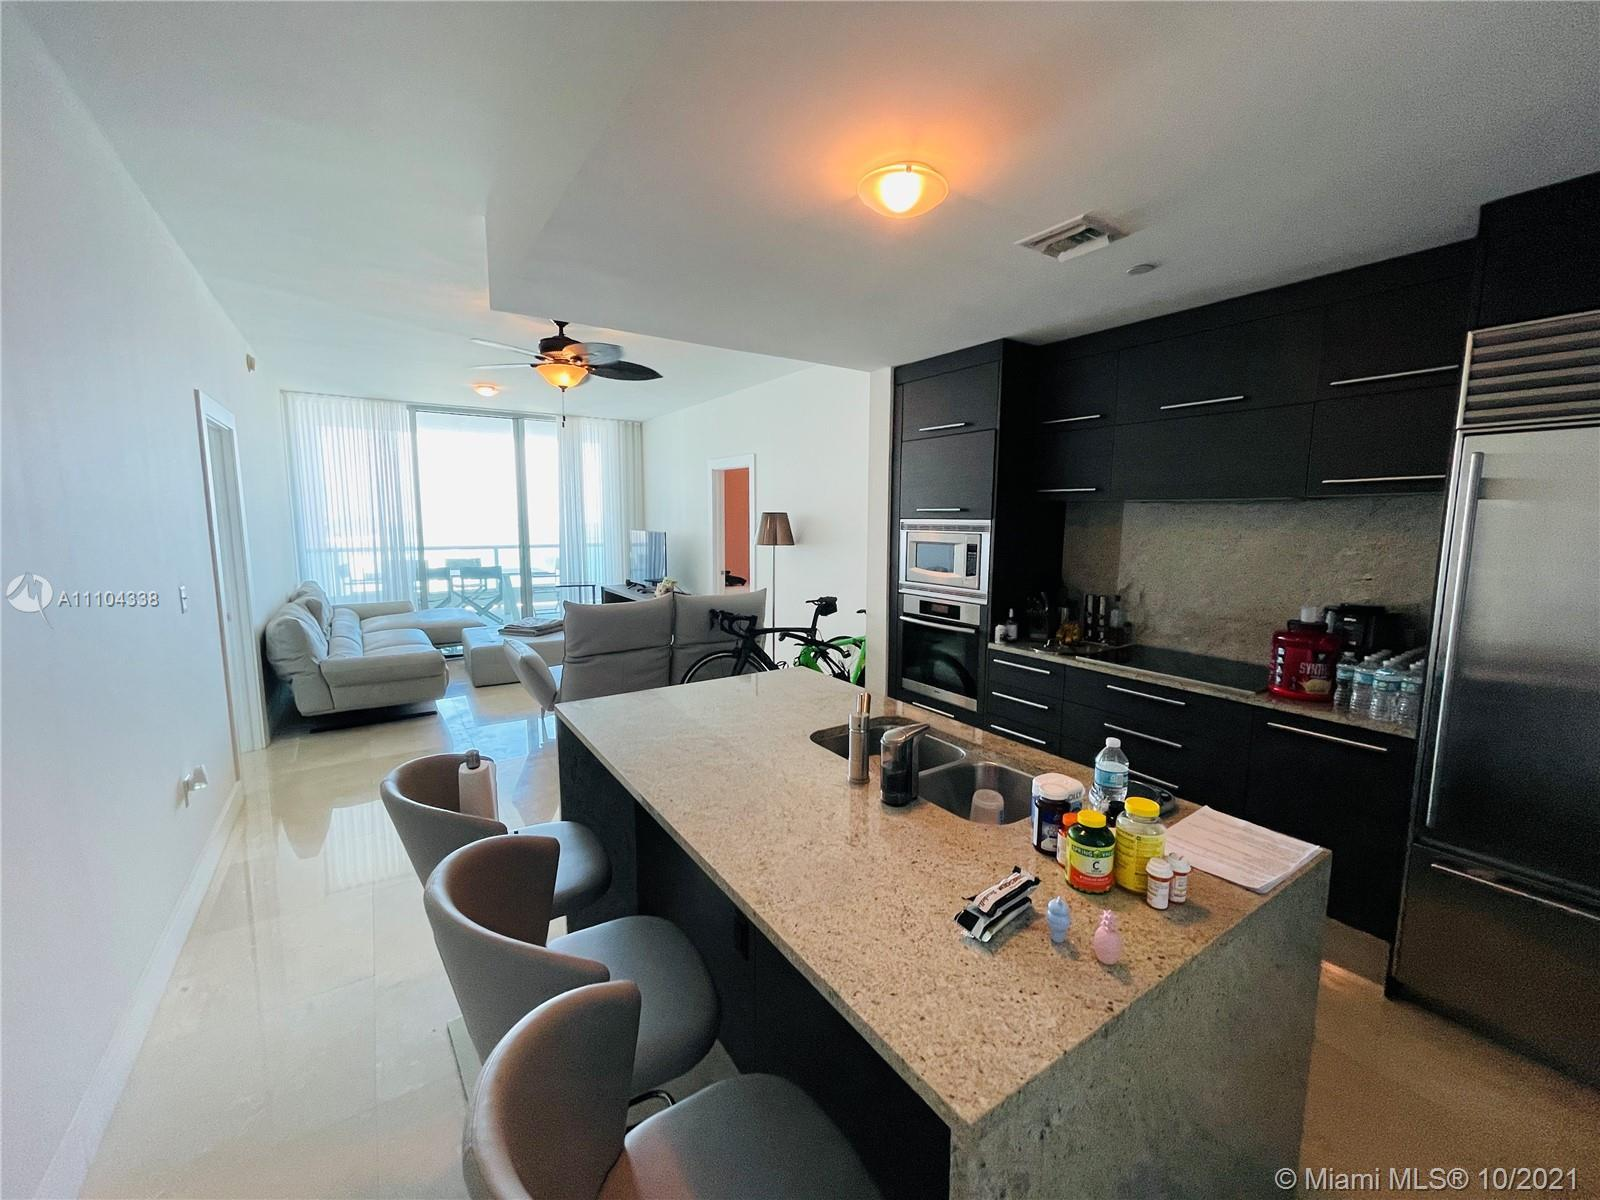 Spectacular one of a kind unit at 900 Biscayne Bay Tower. Luxurious 2 bedrooms/3 baths + den with 10